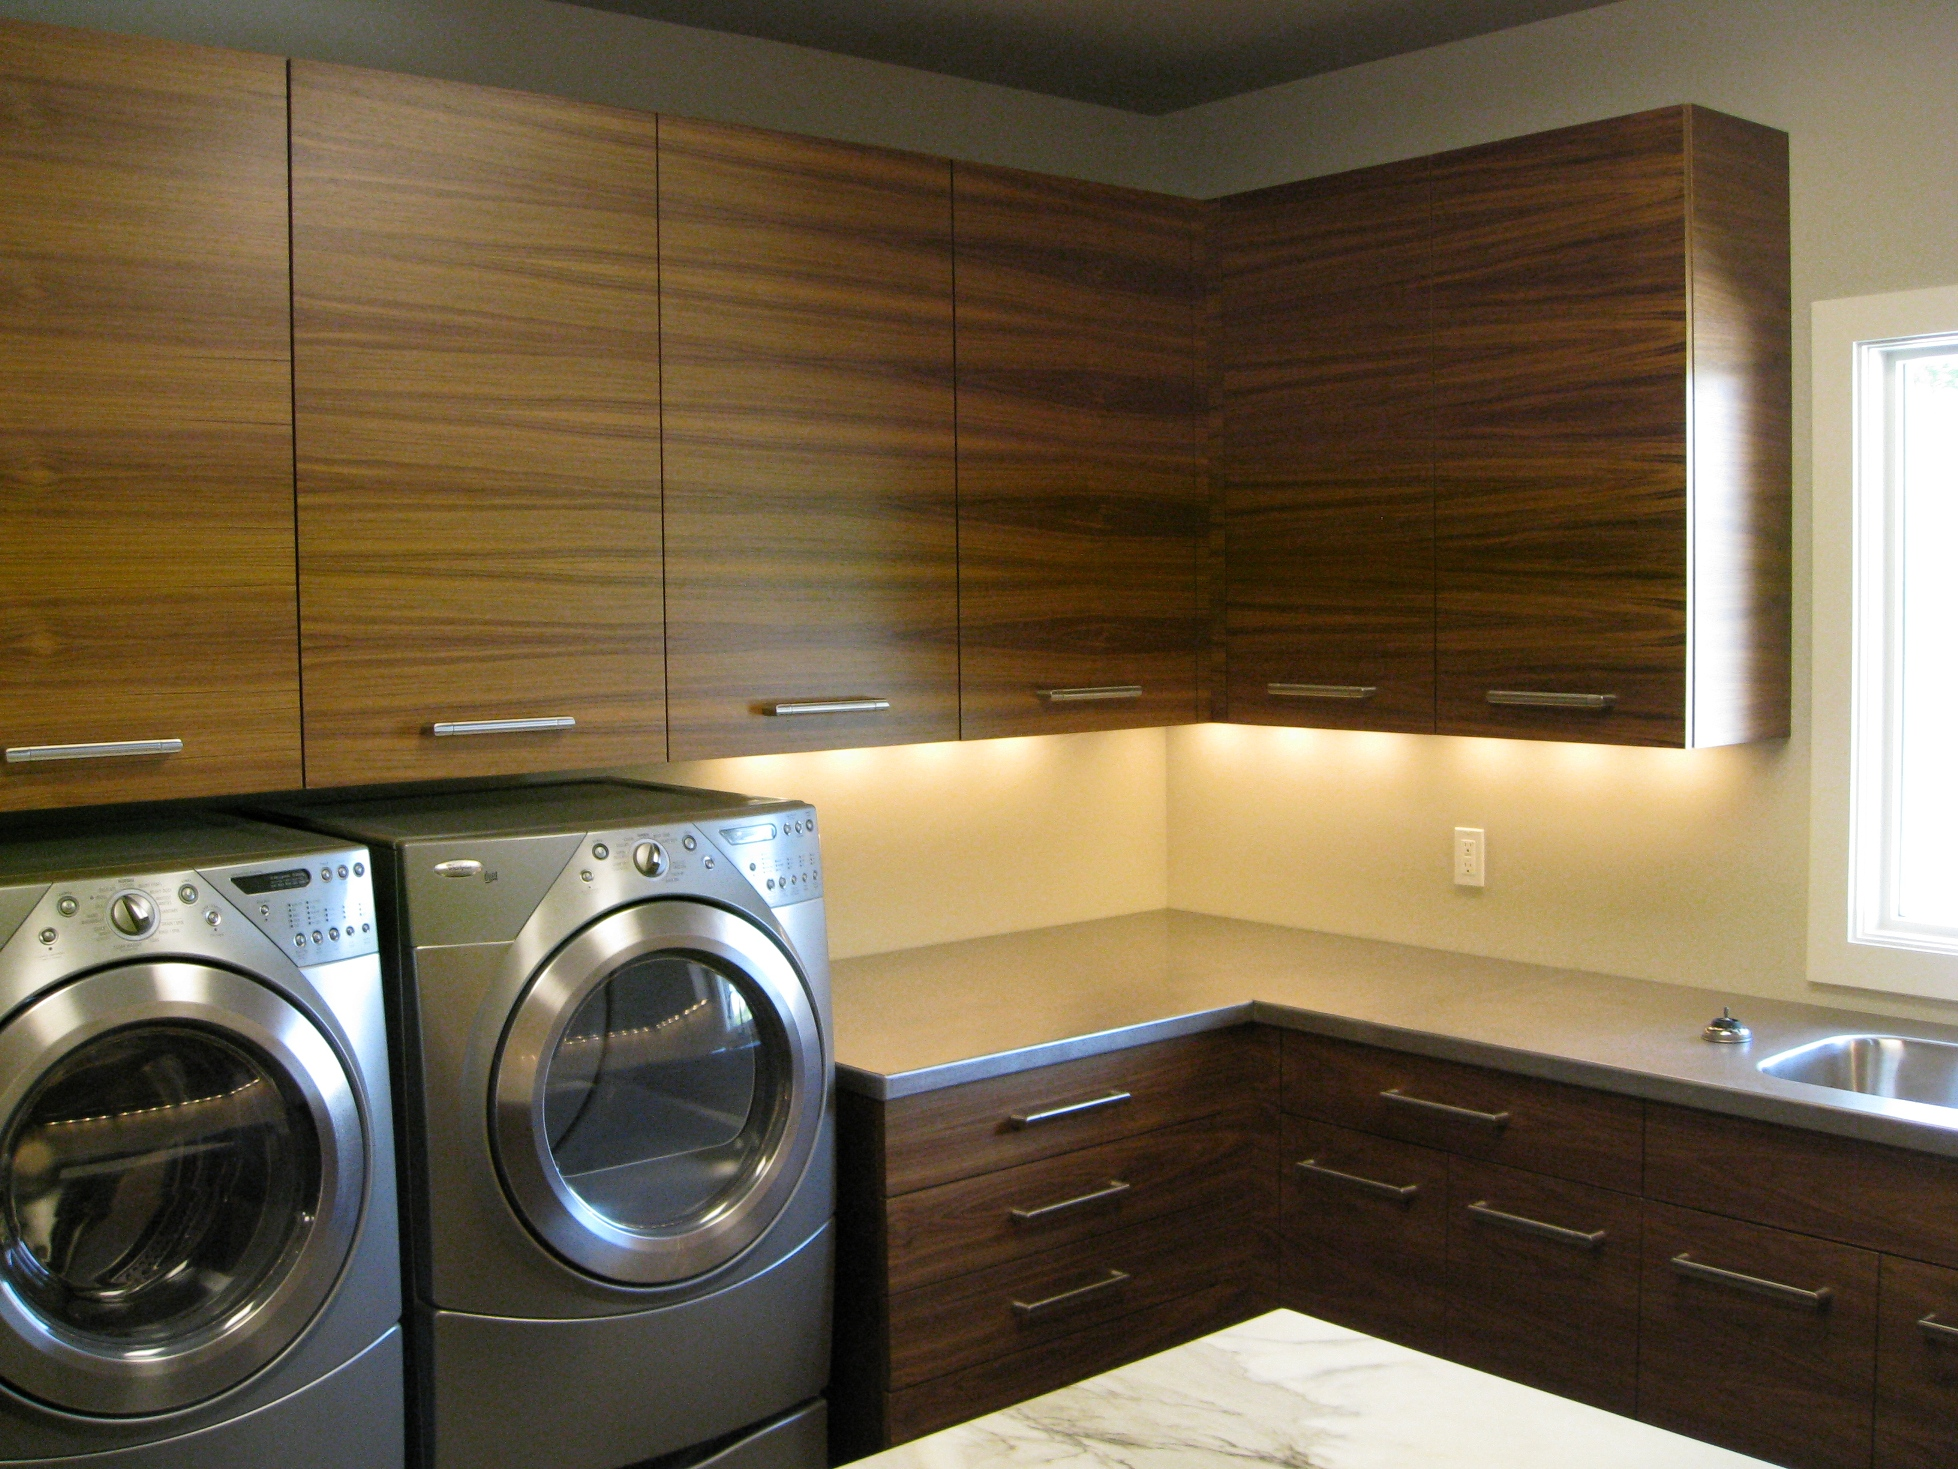 Apex cabinets omaha home fatare for Apex kitchen cabinets